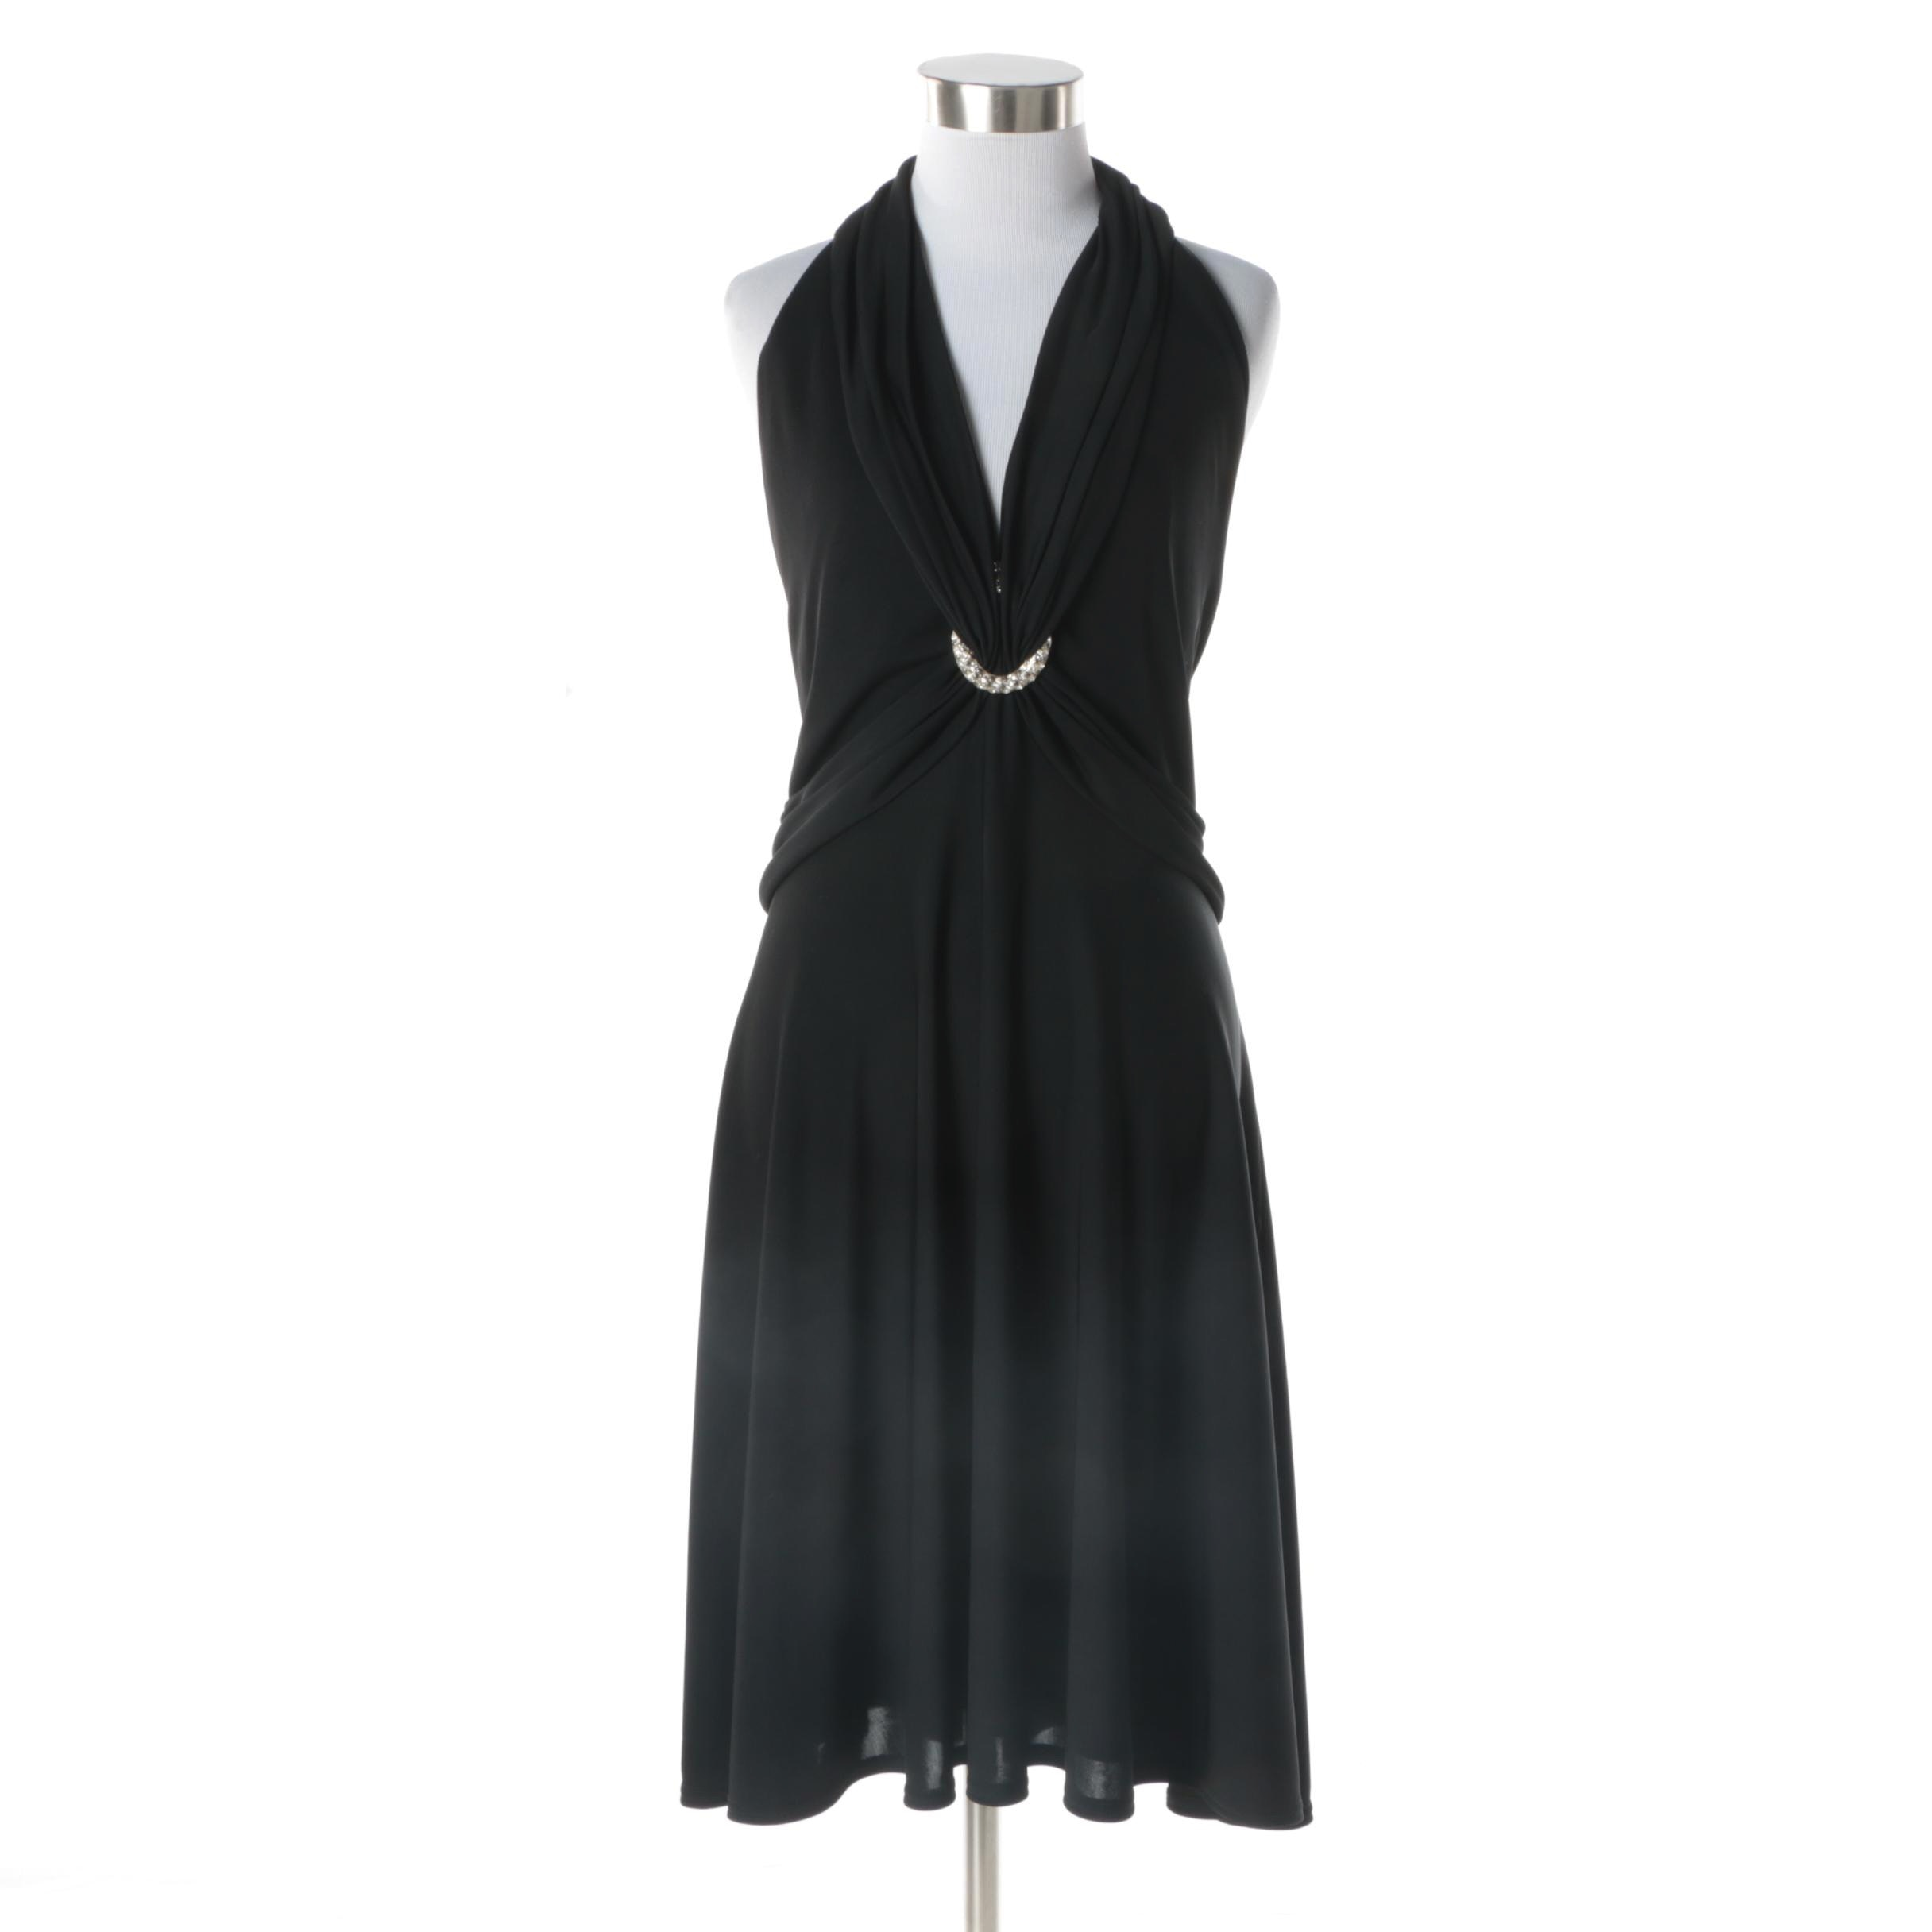 Tadashi Black Halter Style Sleeveless Cocktail Dress with Rhinestone Detail